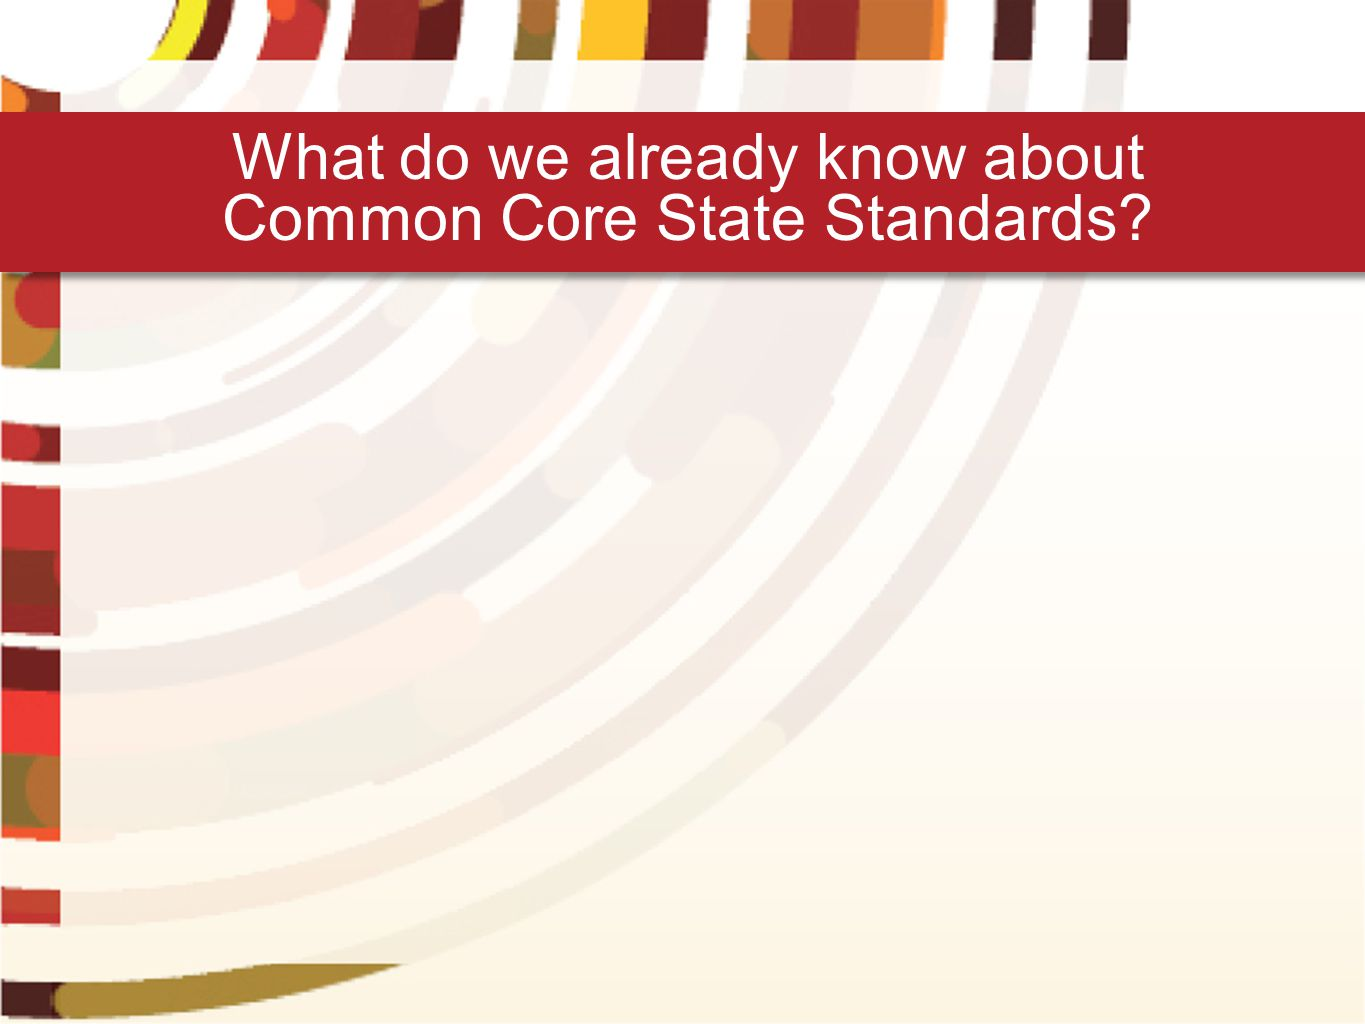 What do we already know about Common Core State Standards